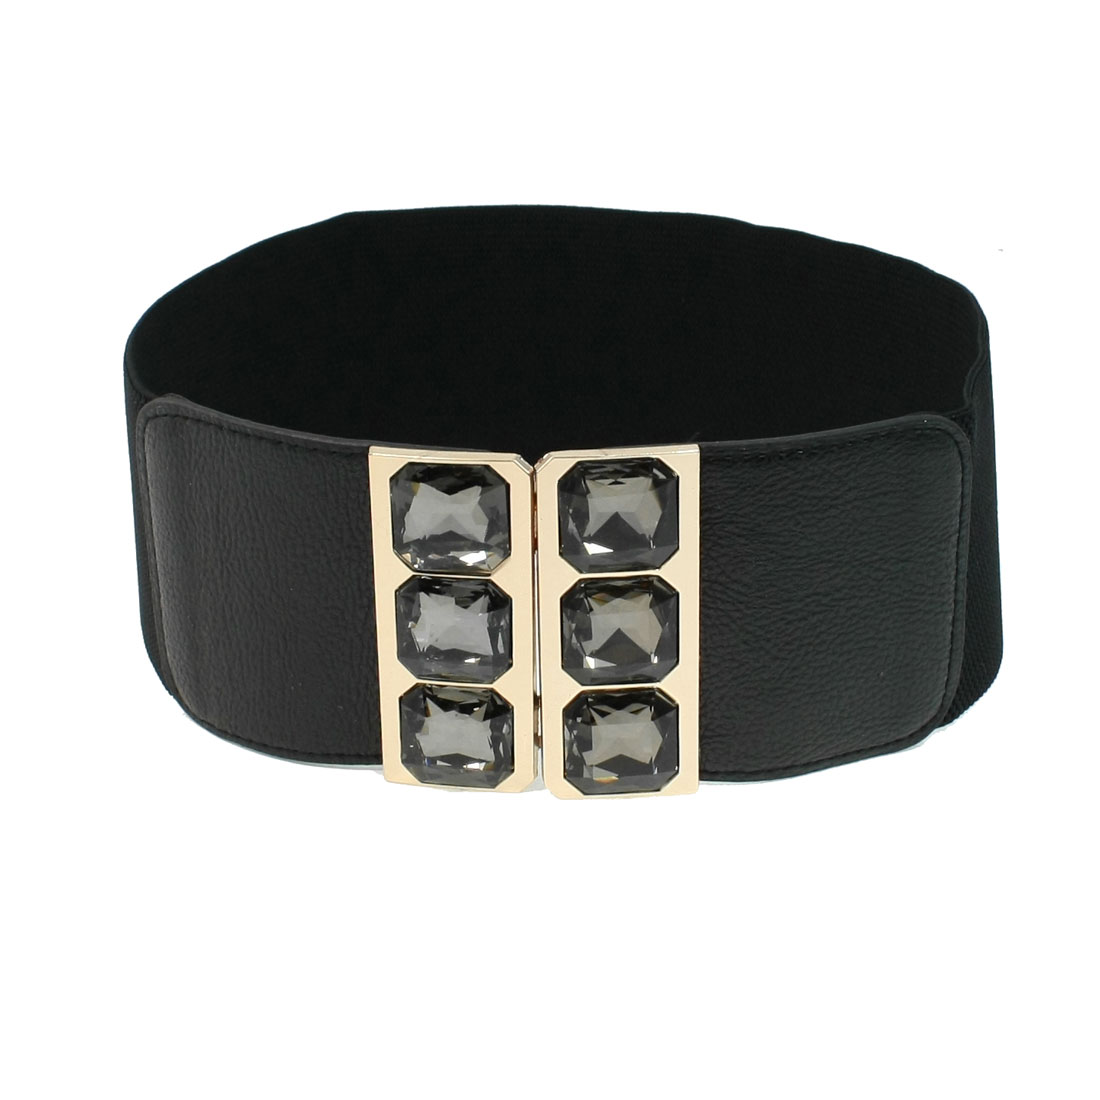 Crystal Interlock Buckle Faux Leather Black Textured Elastic Belt for Woman